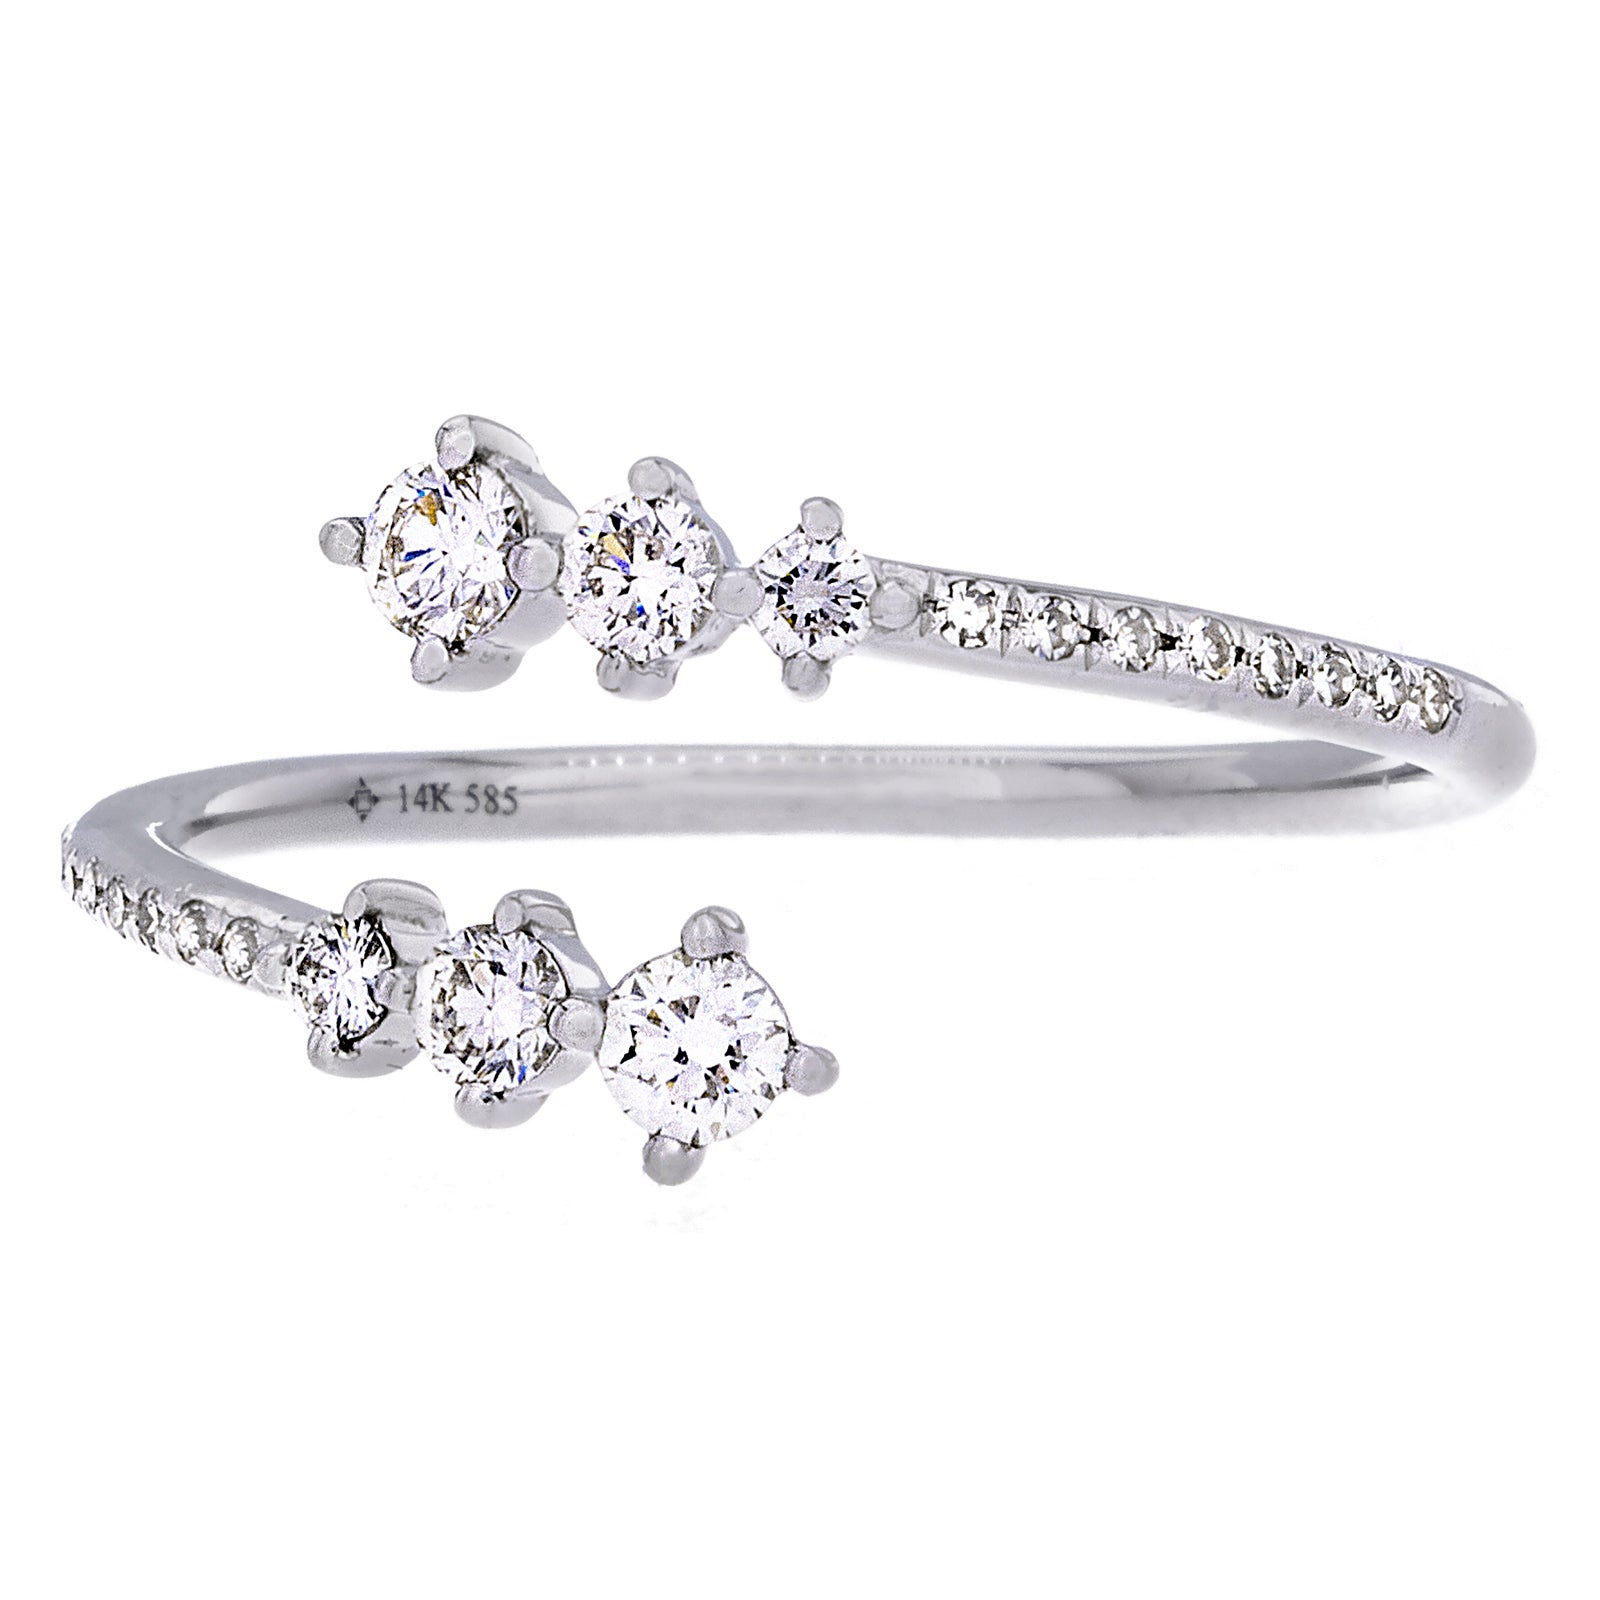 Diamonds & 14K White Gold Open Ring - SOLD